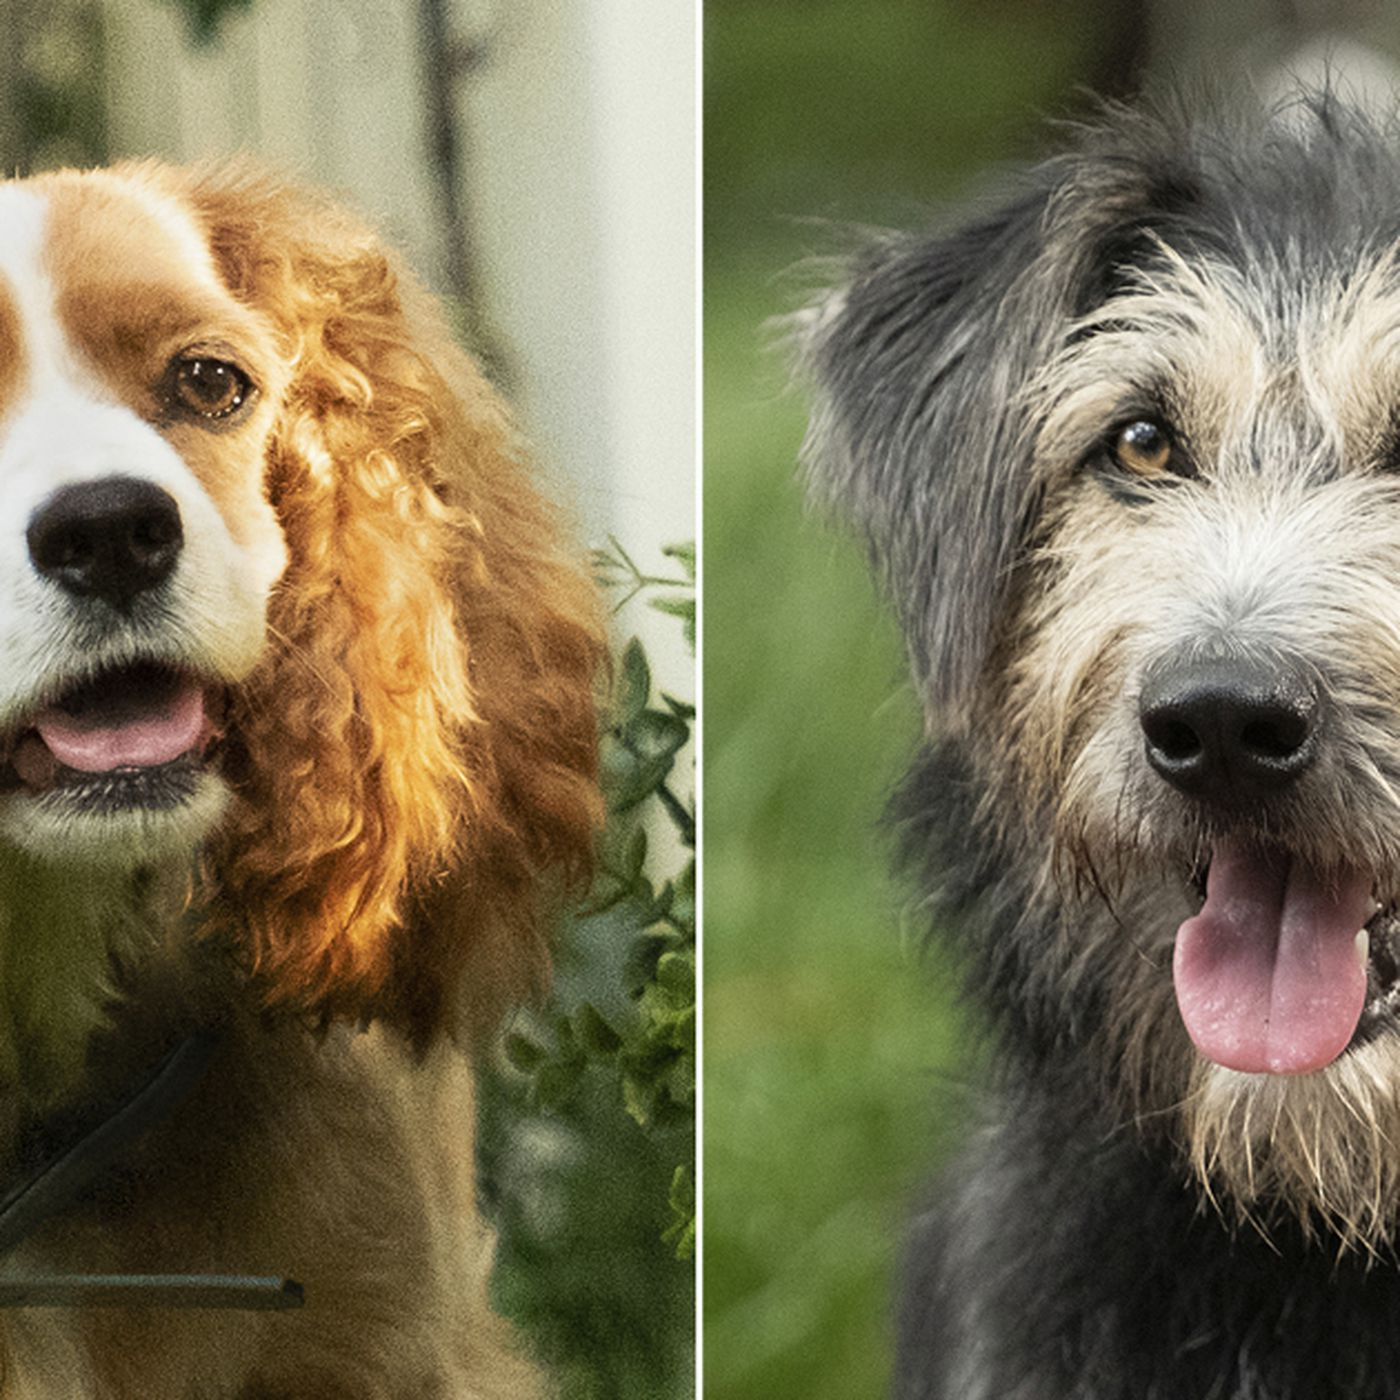 Lady And The Tramp Remake Here S What The Disney Movie S Canine Stars Look Like Deseret News